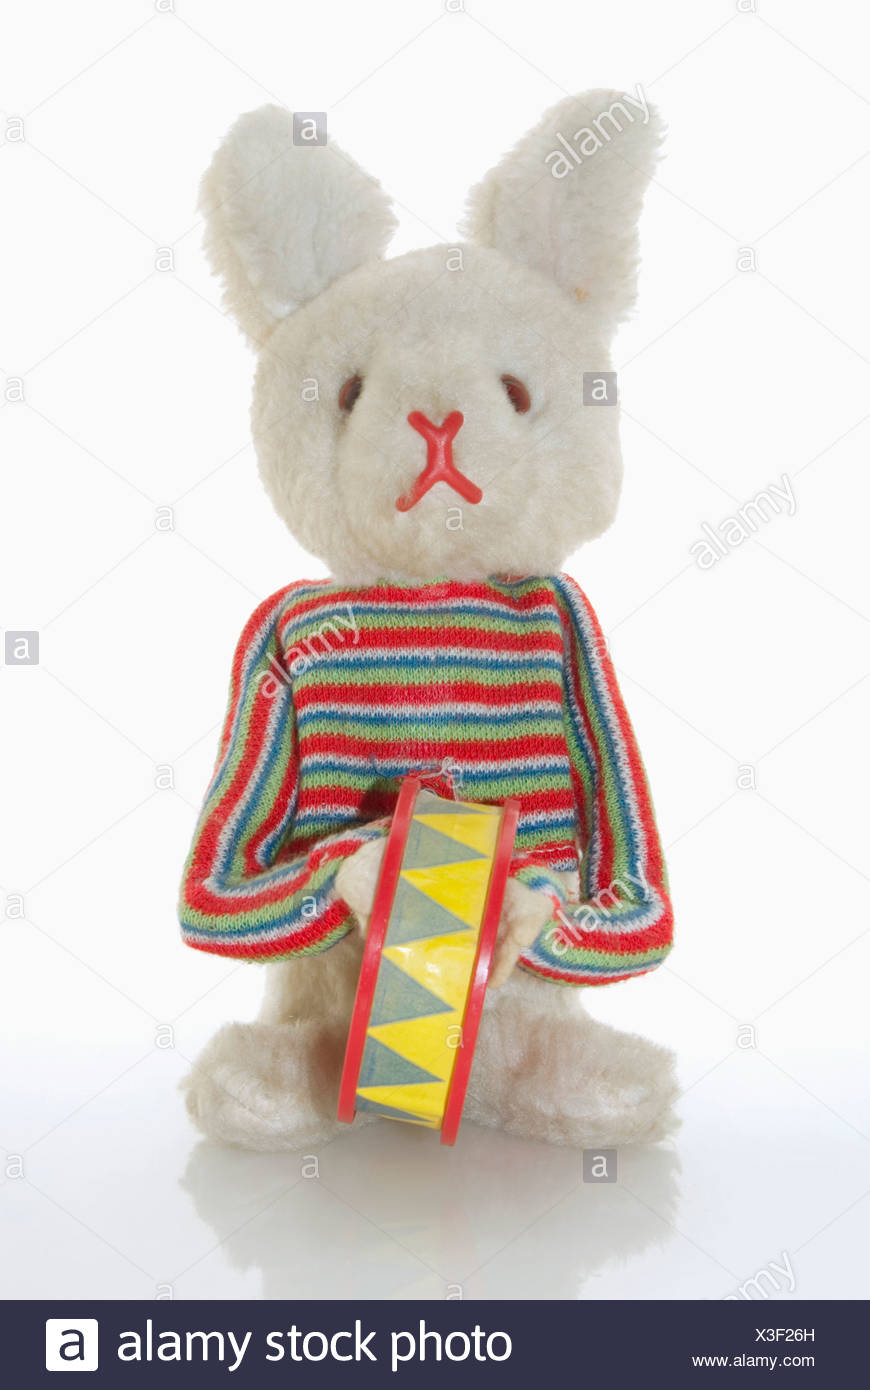 Toy bunny, close-up - Stock Image